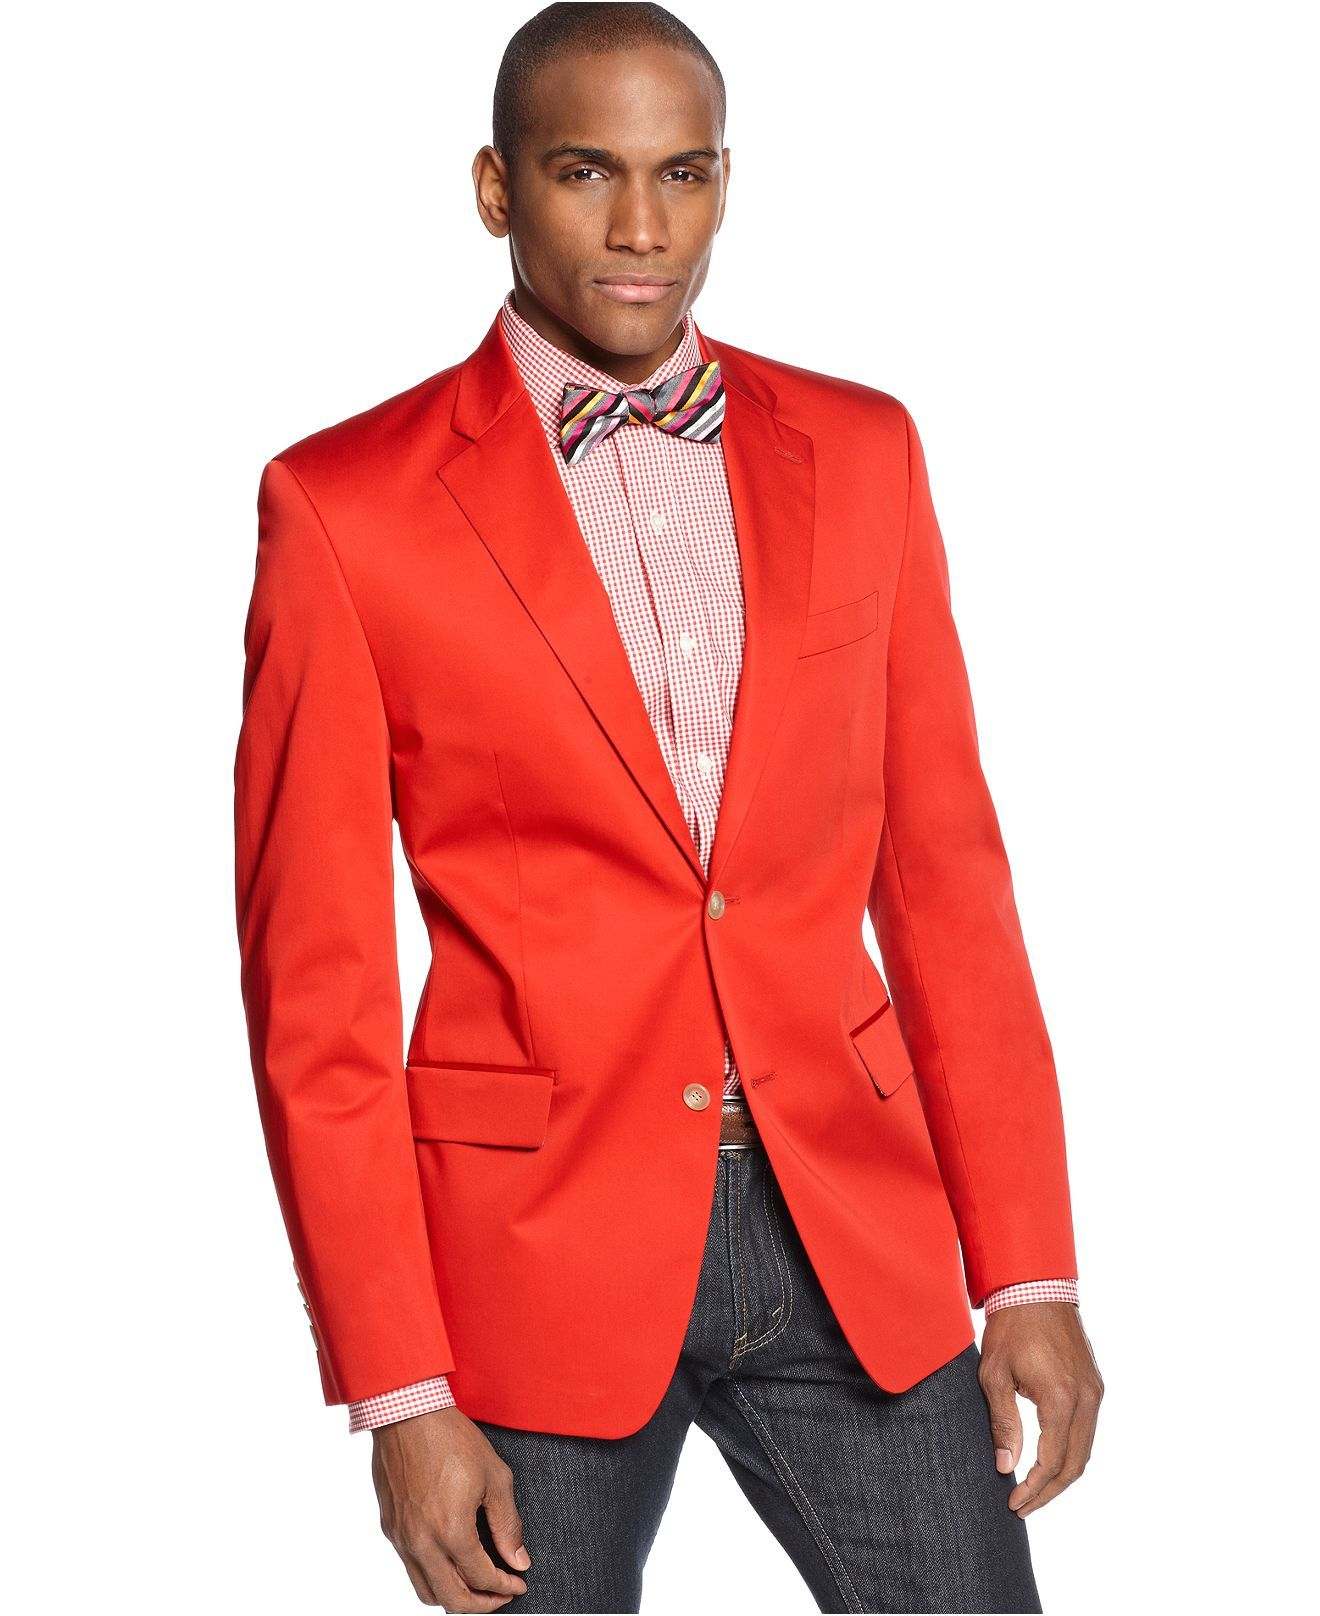 Blazers Jackets Mens: Sean John Jacket, Solid Cotton Blazer